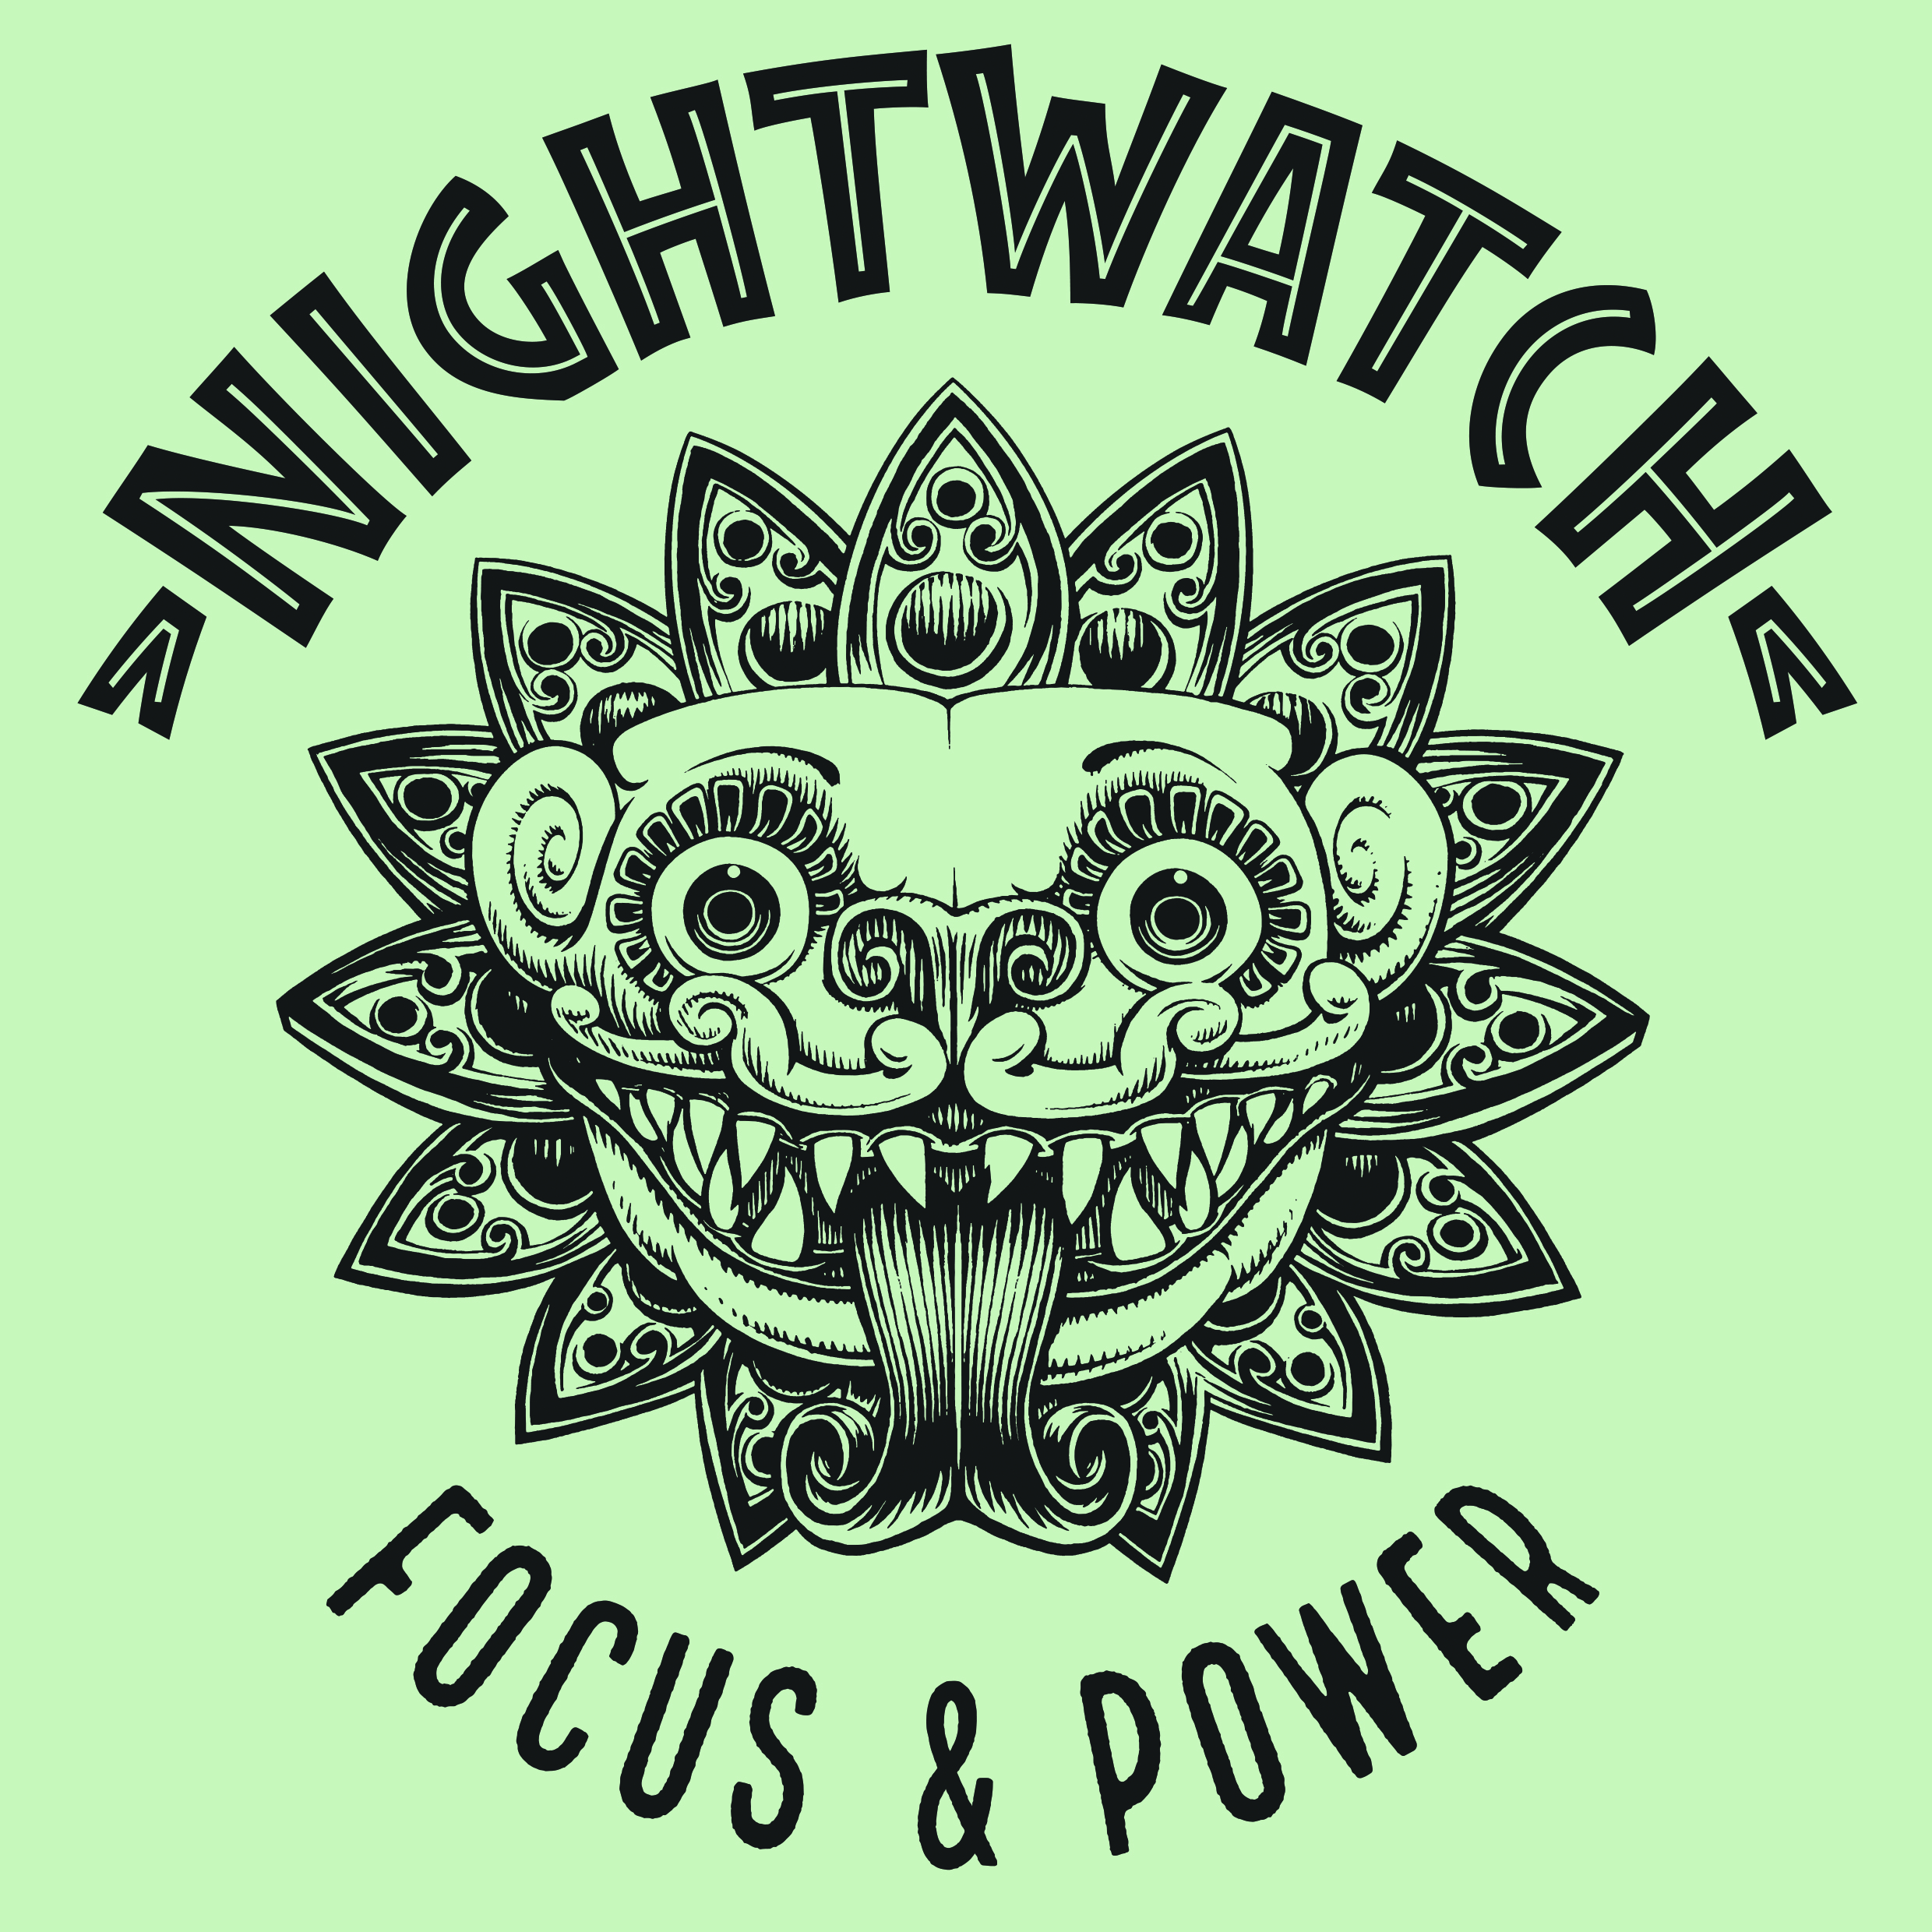 The name Nightwatch